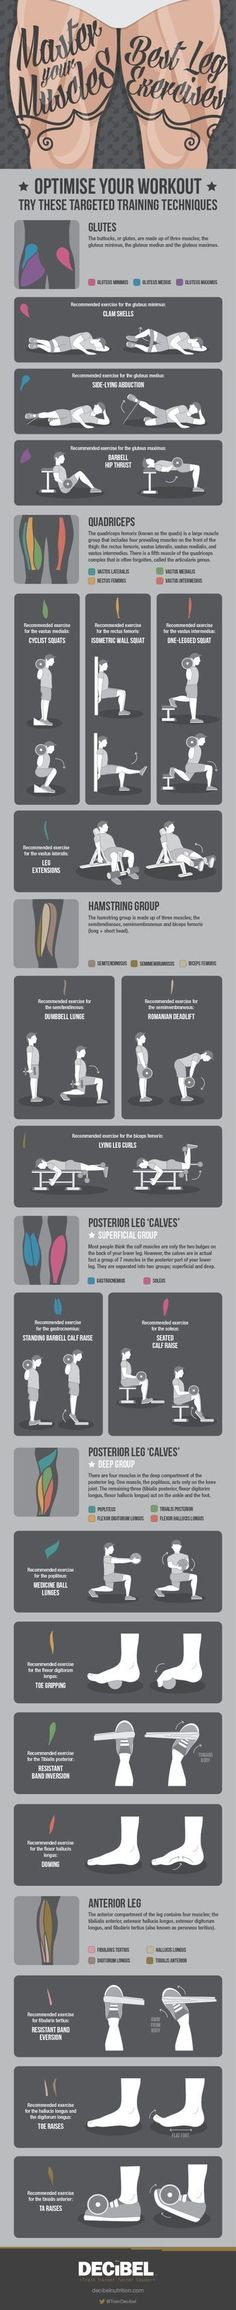 Learn How to Bulk Up Your Chicken Legs with These Exercises #infographic #training #fitness